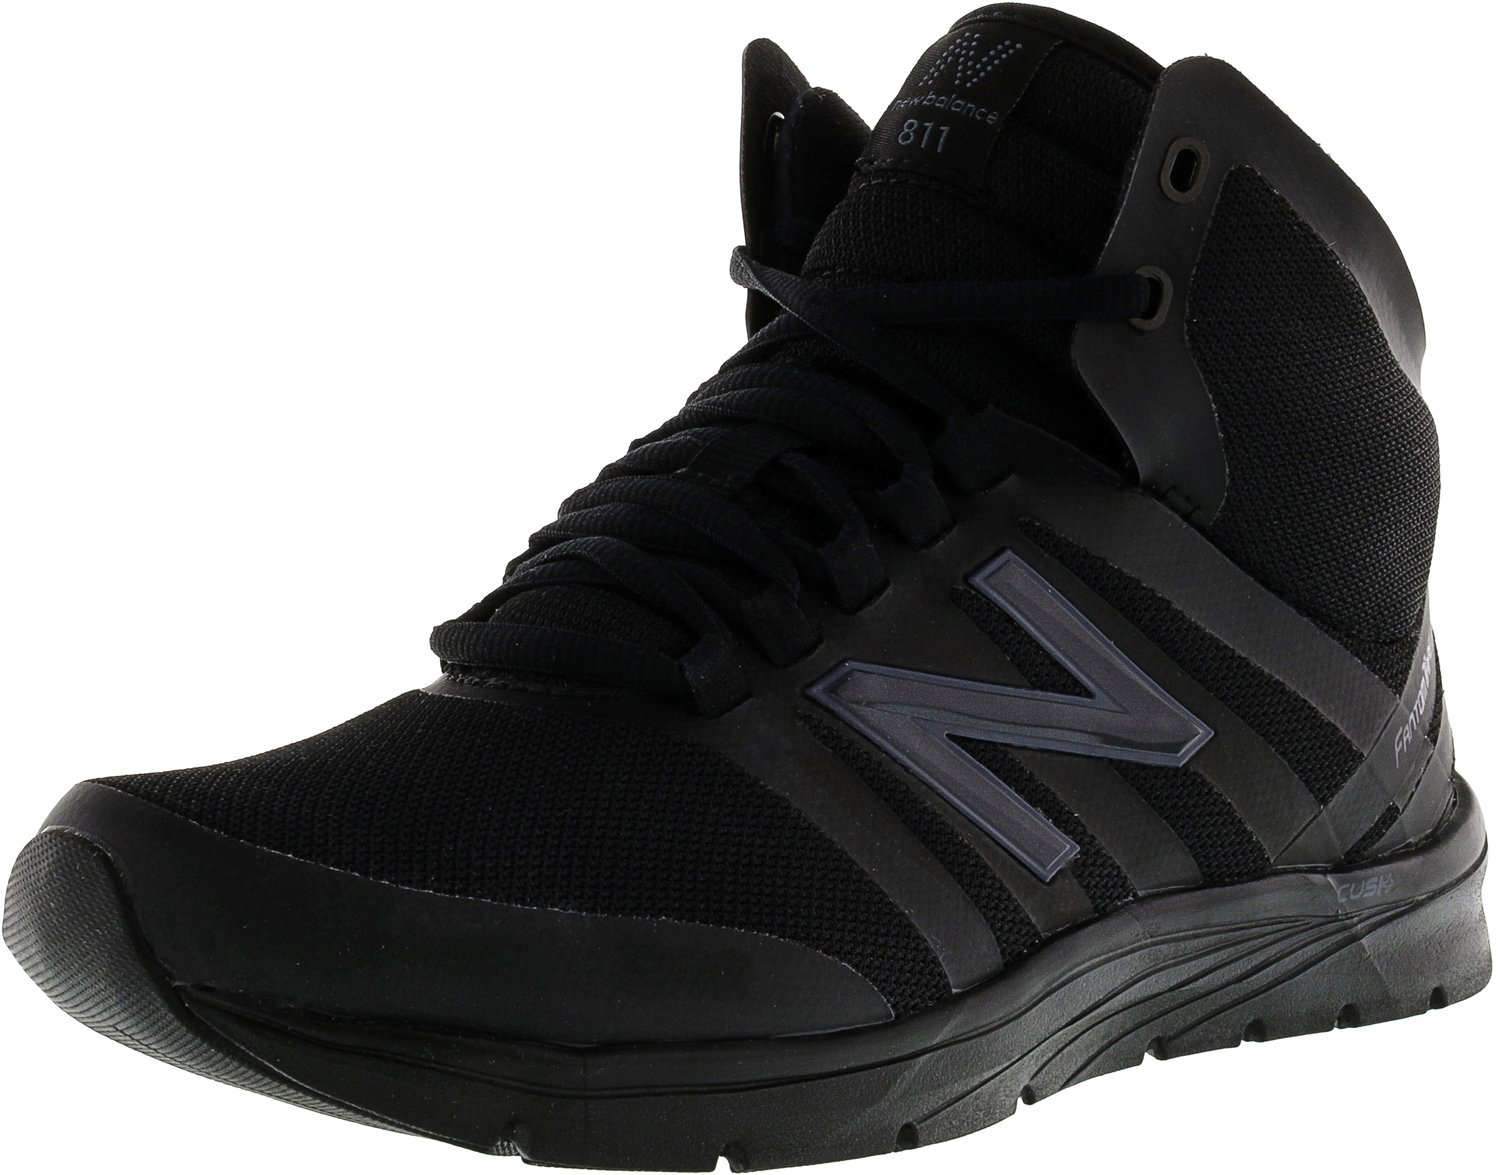 New Balance Women's WX811V2 High Top Cross Trainer, Black/Outer Space Graphic, 10.5 B US